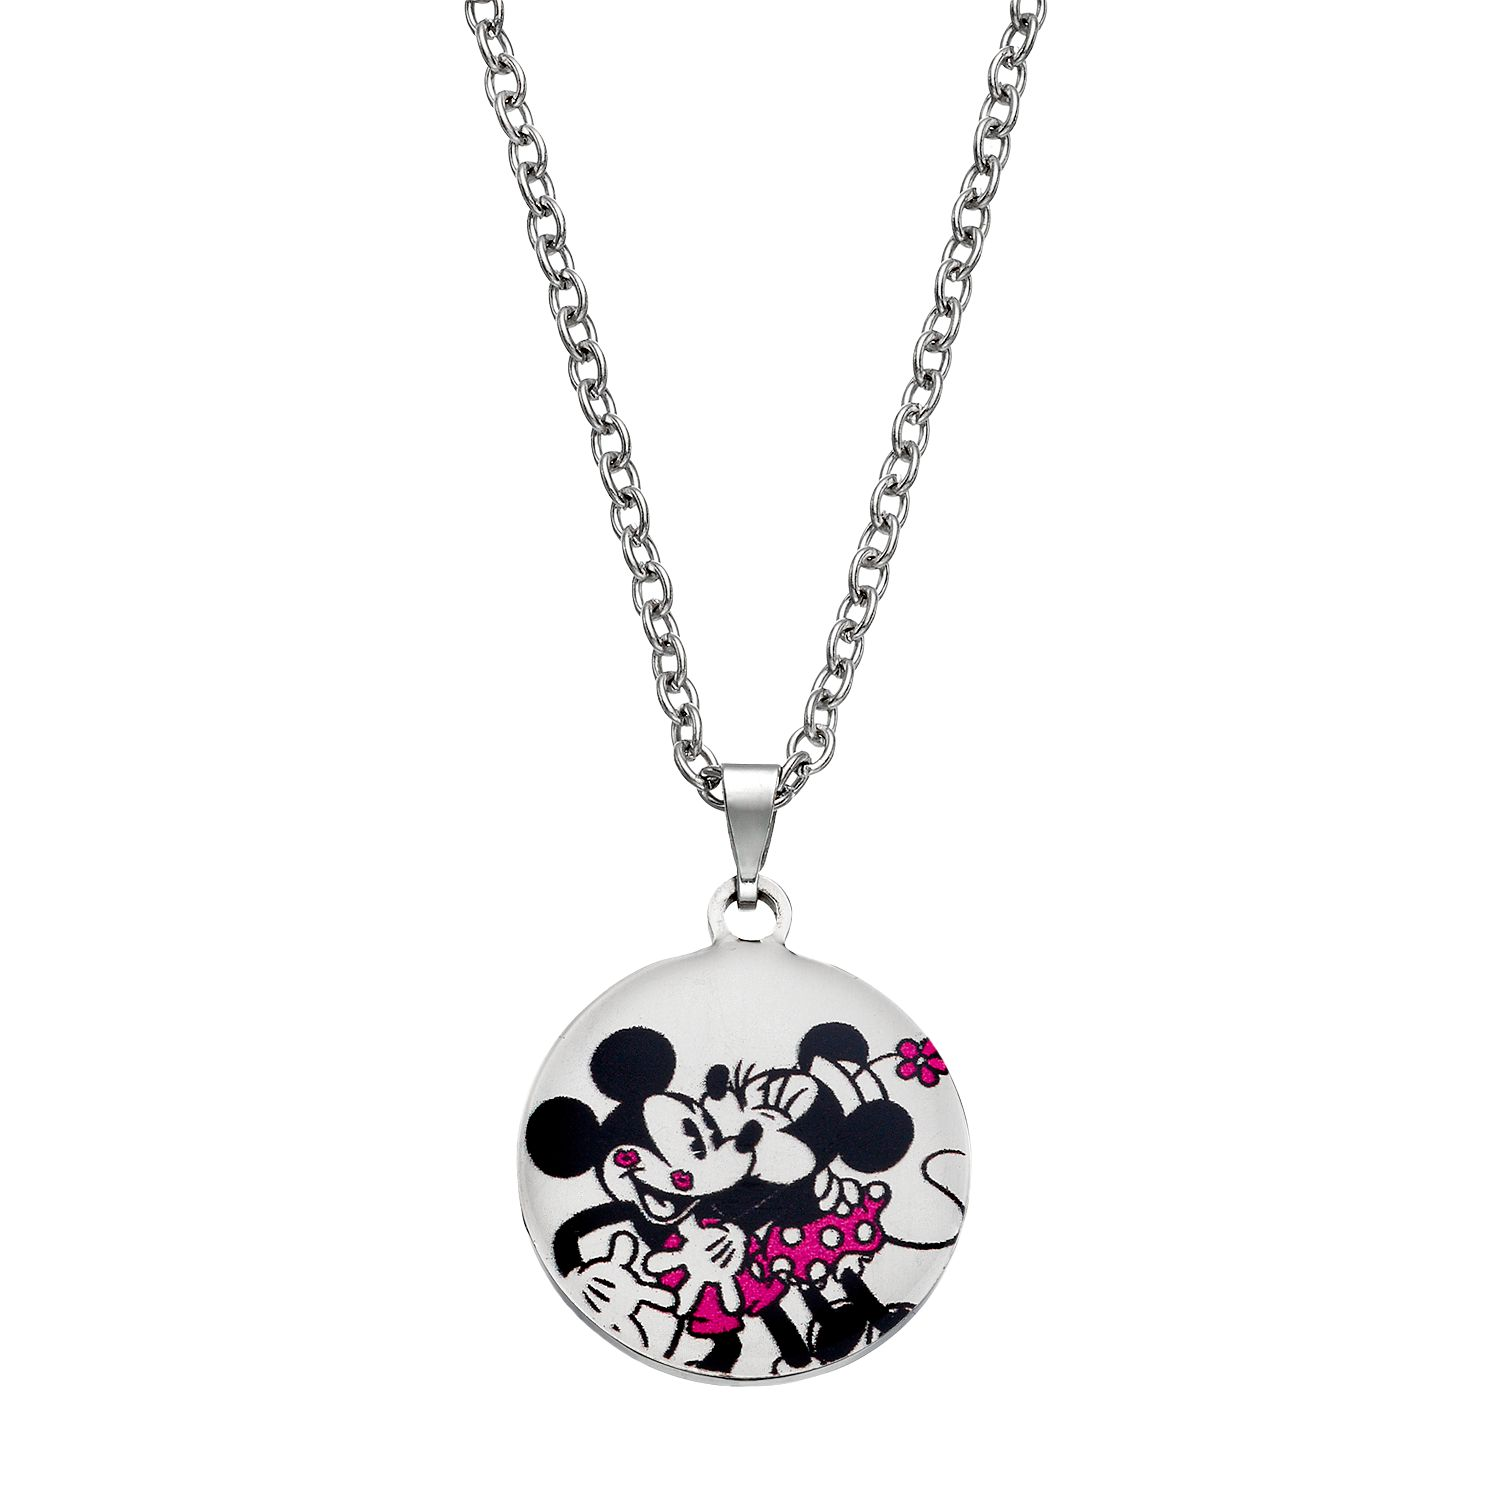 Disneys Mickey Amp Minnie Mouse Kids Stainless Steel Heart Pendant Necklace